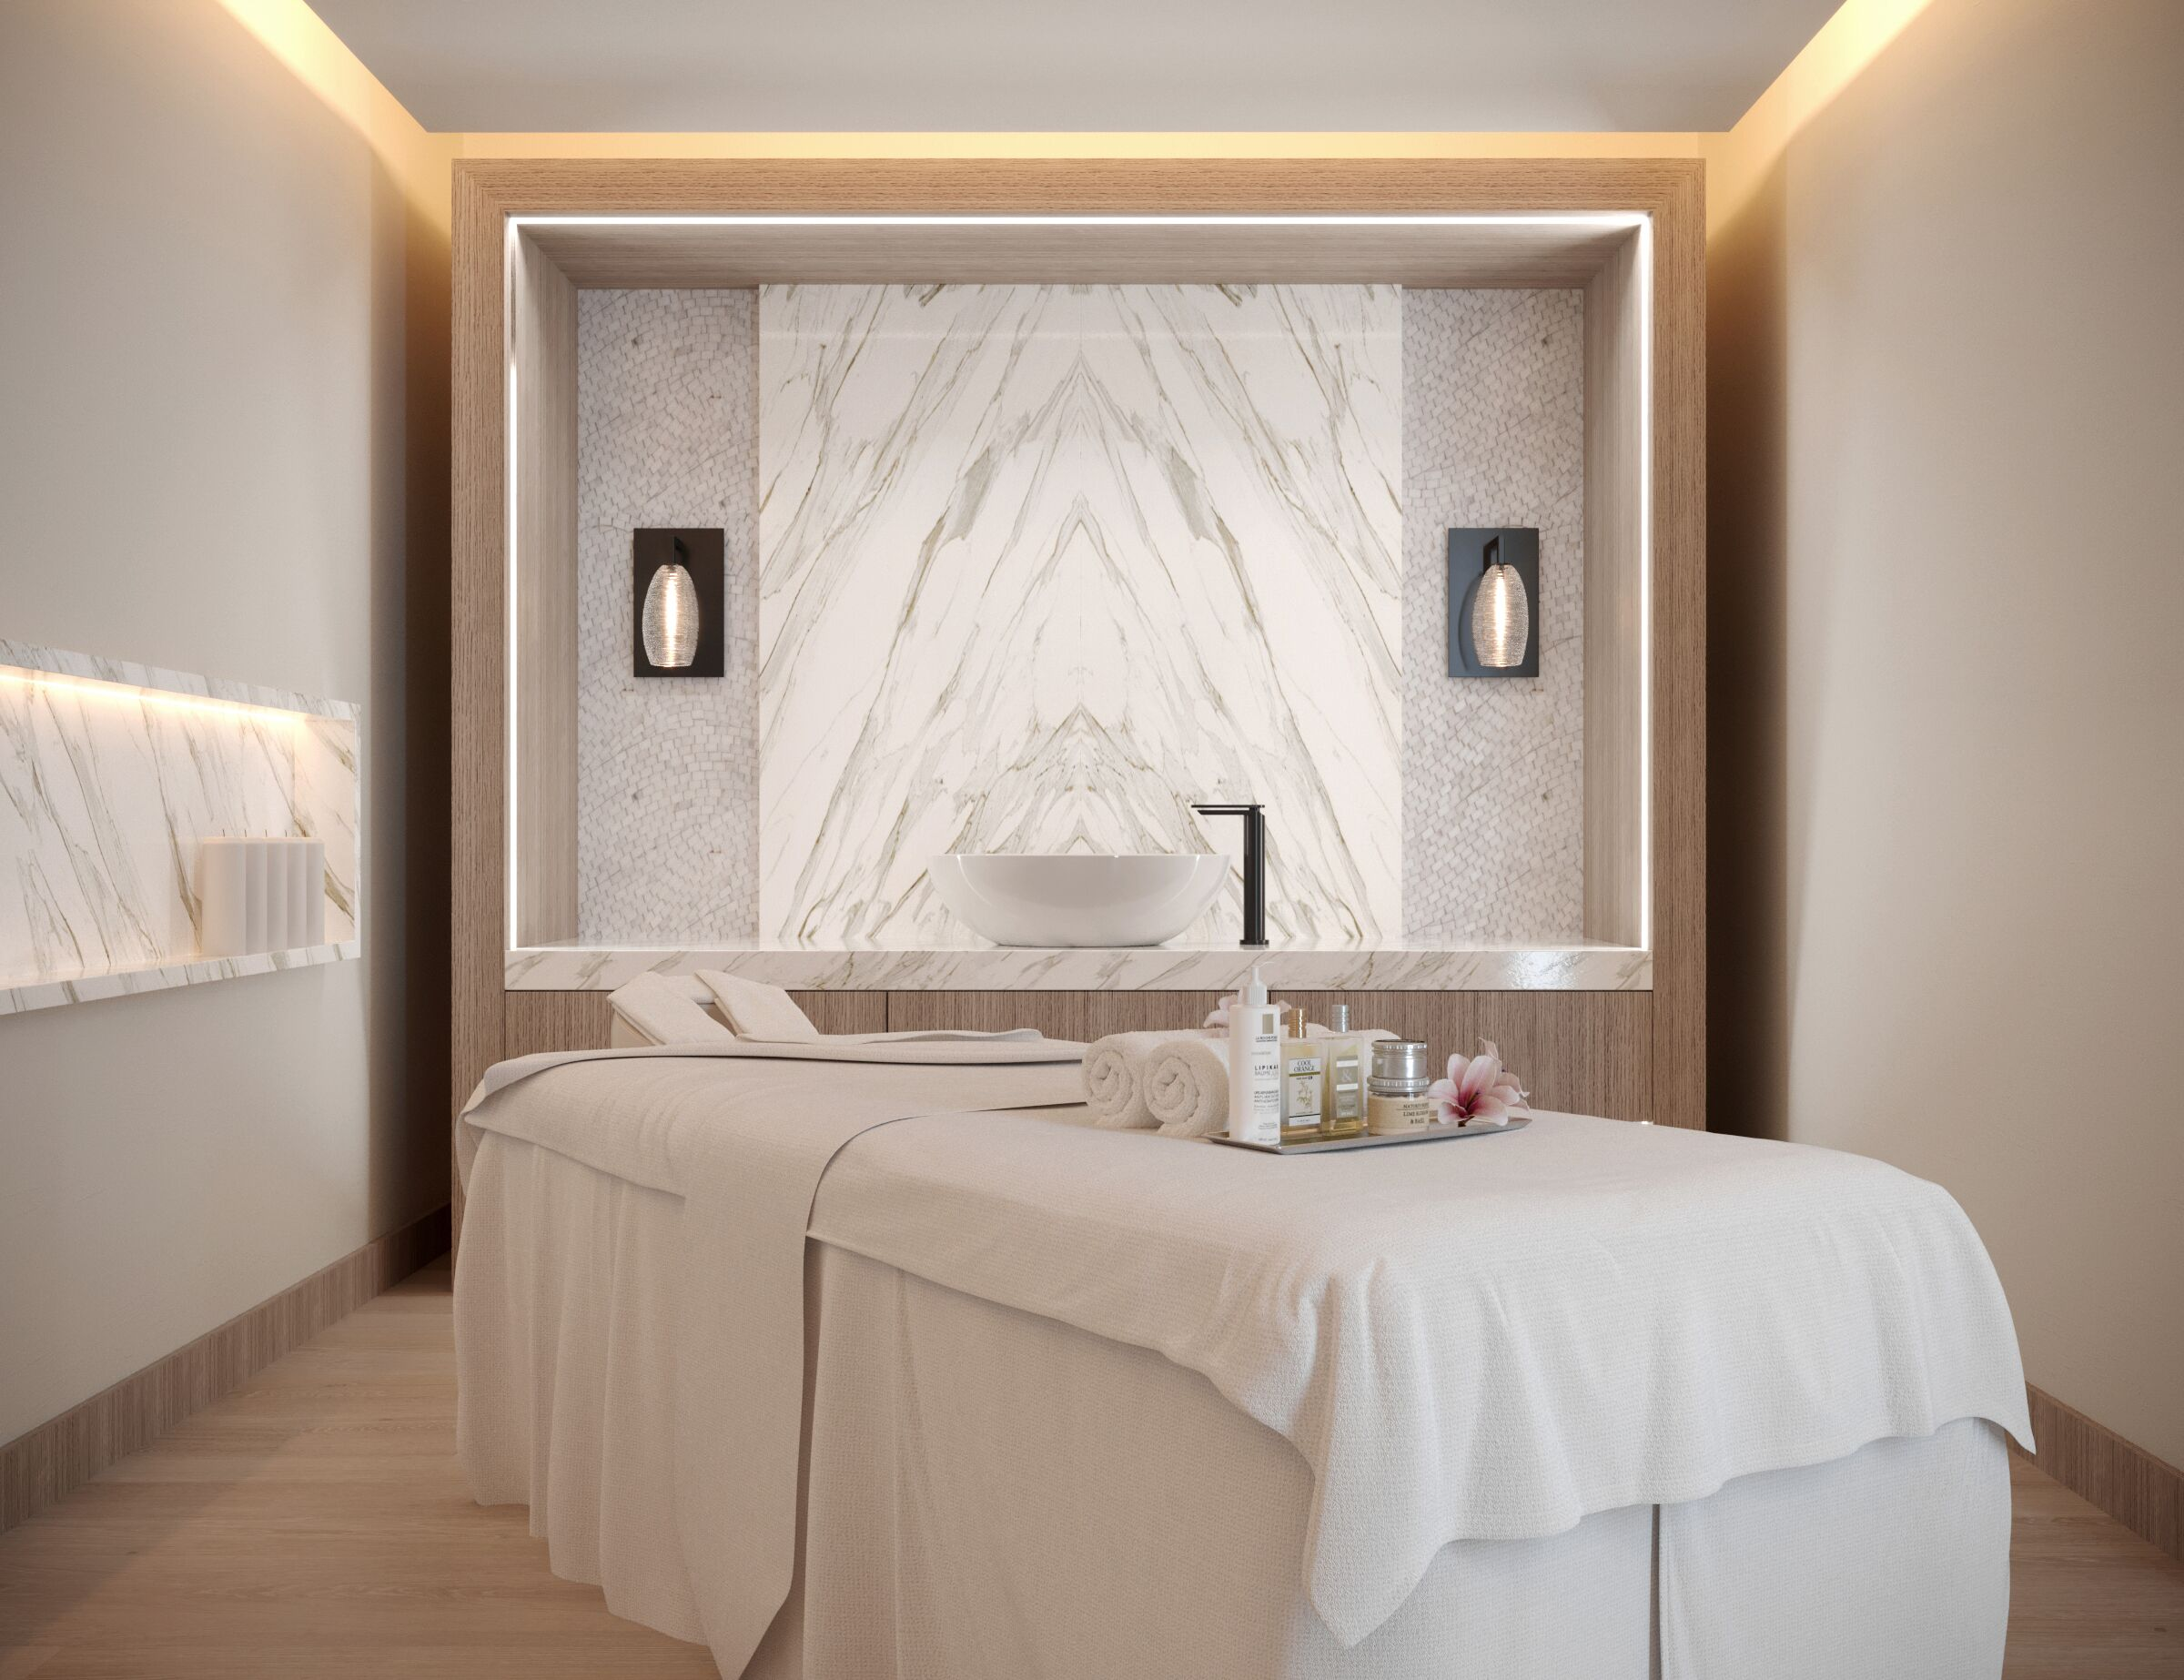 spa treatment room with white towels